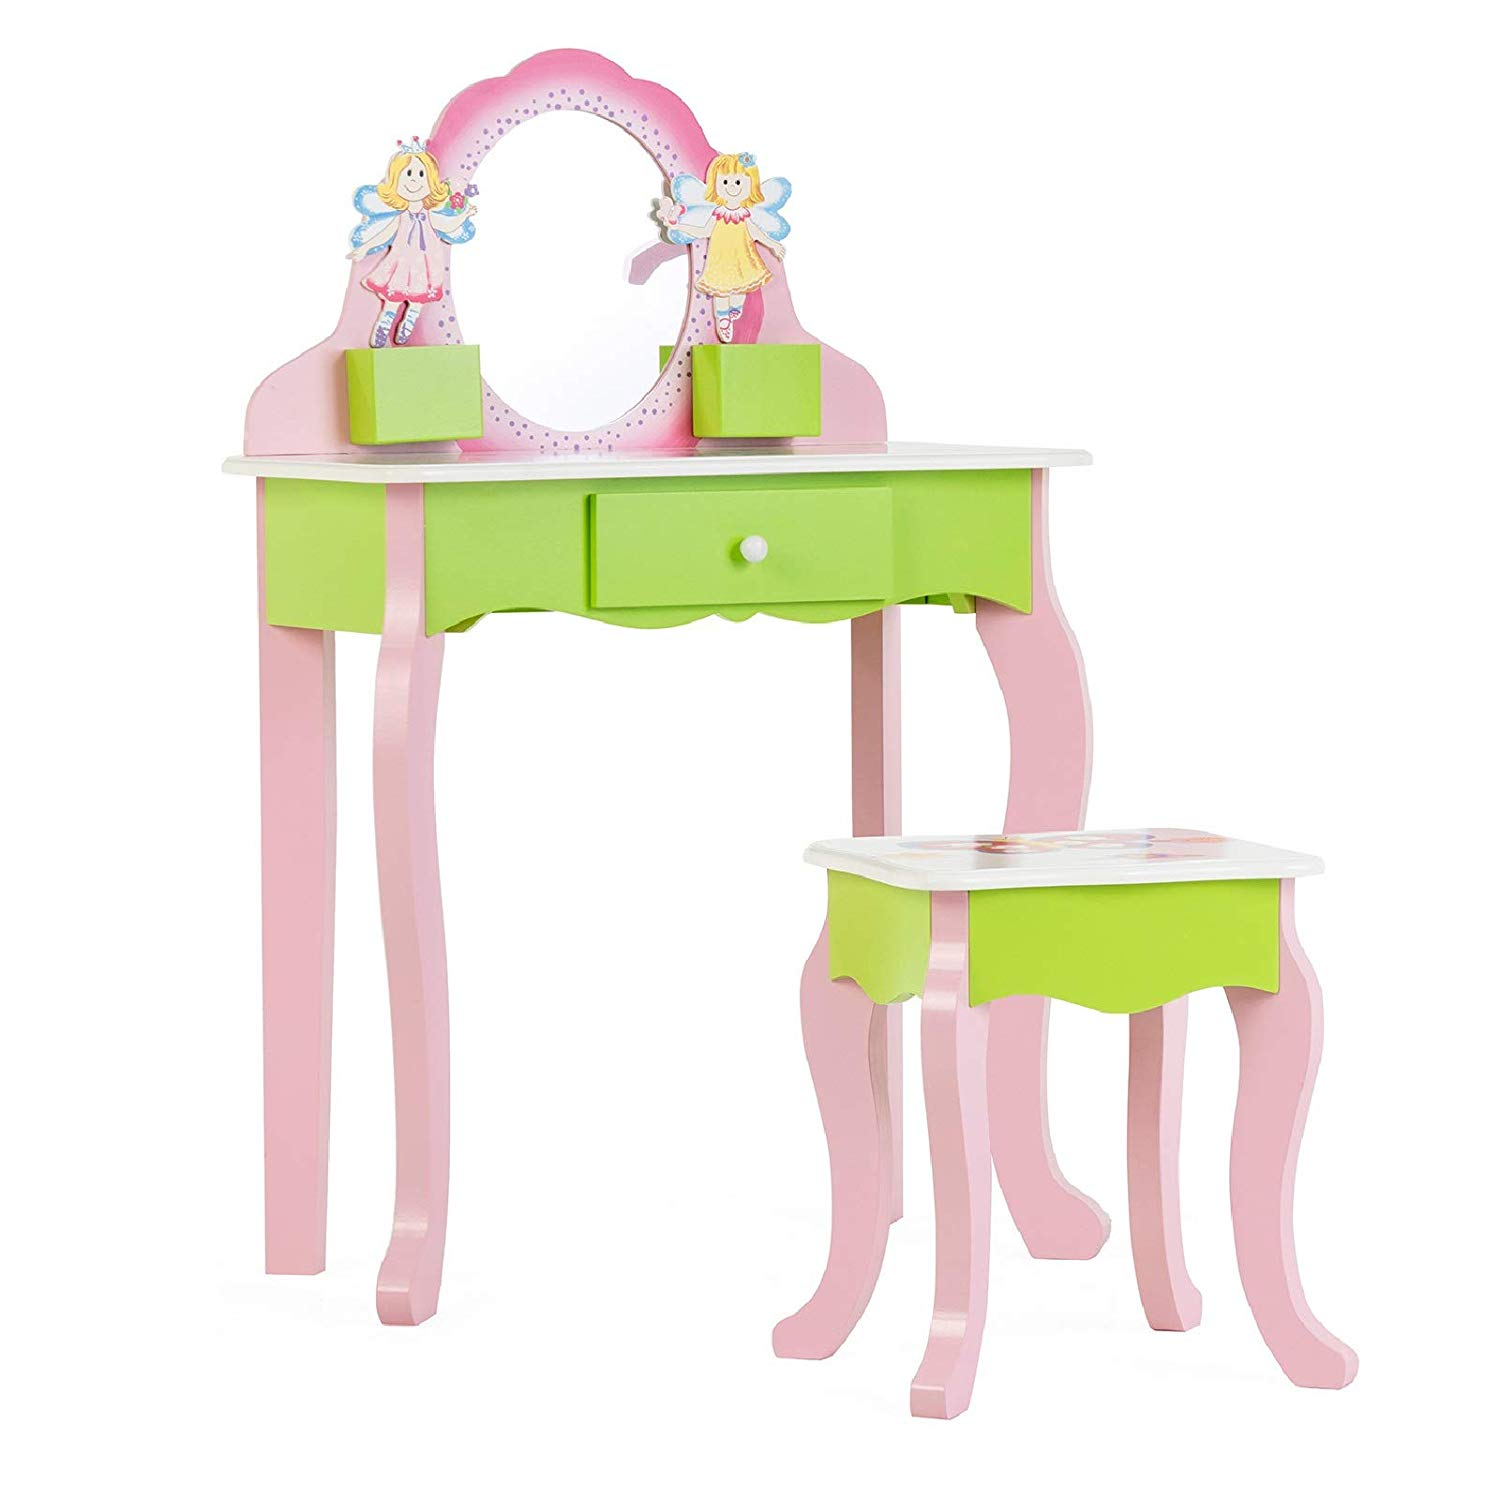 mecor kids vanity set little girls makeup table w flower mirror non toxic hand painted children vanity desk with stool pink green